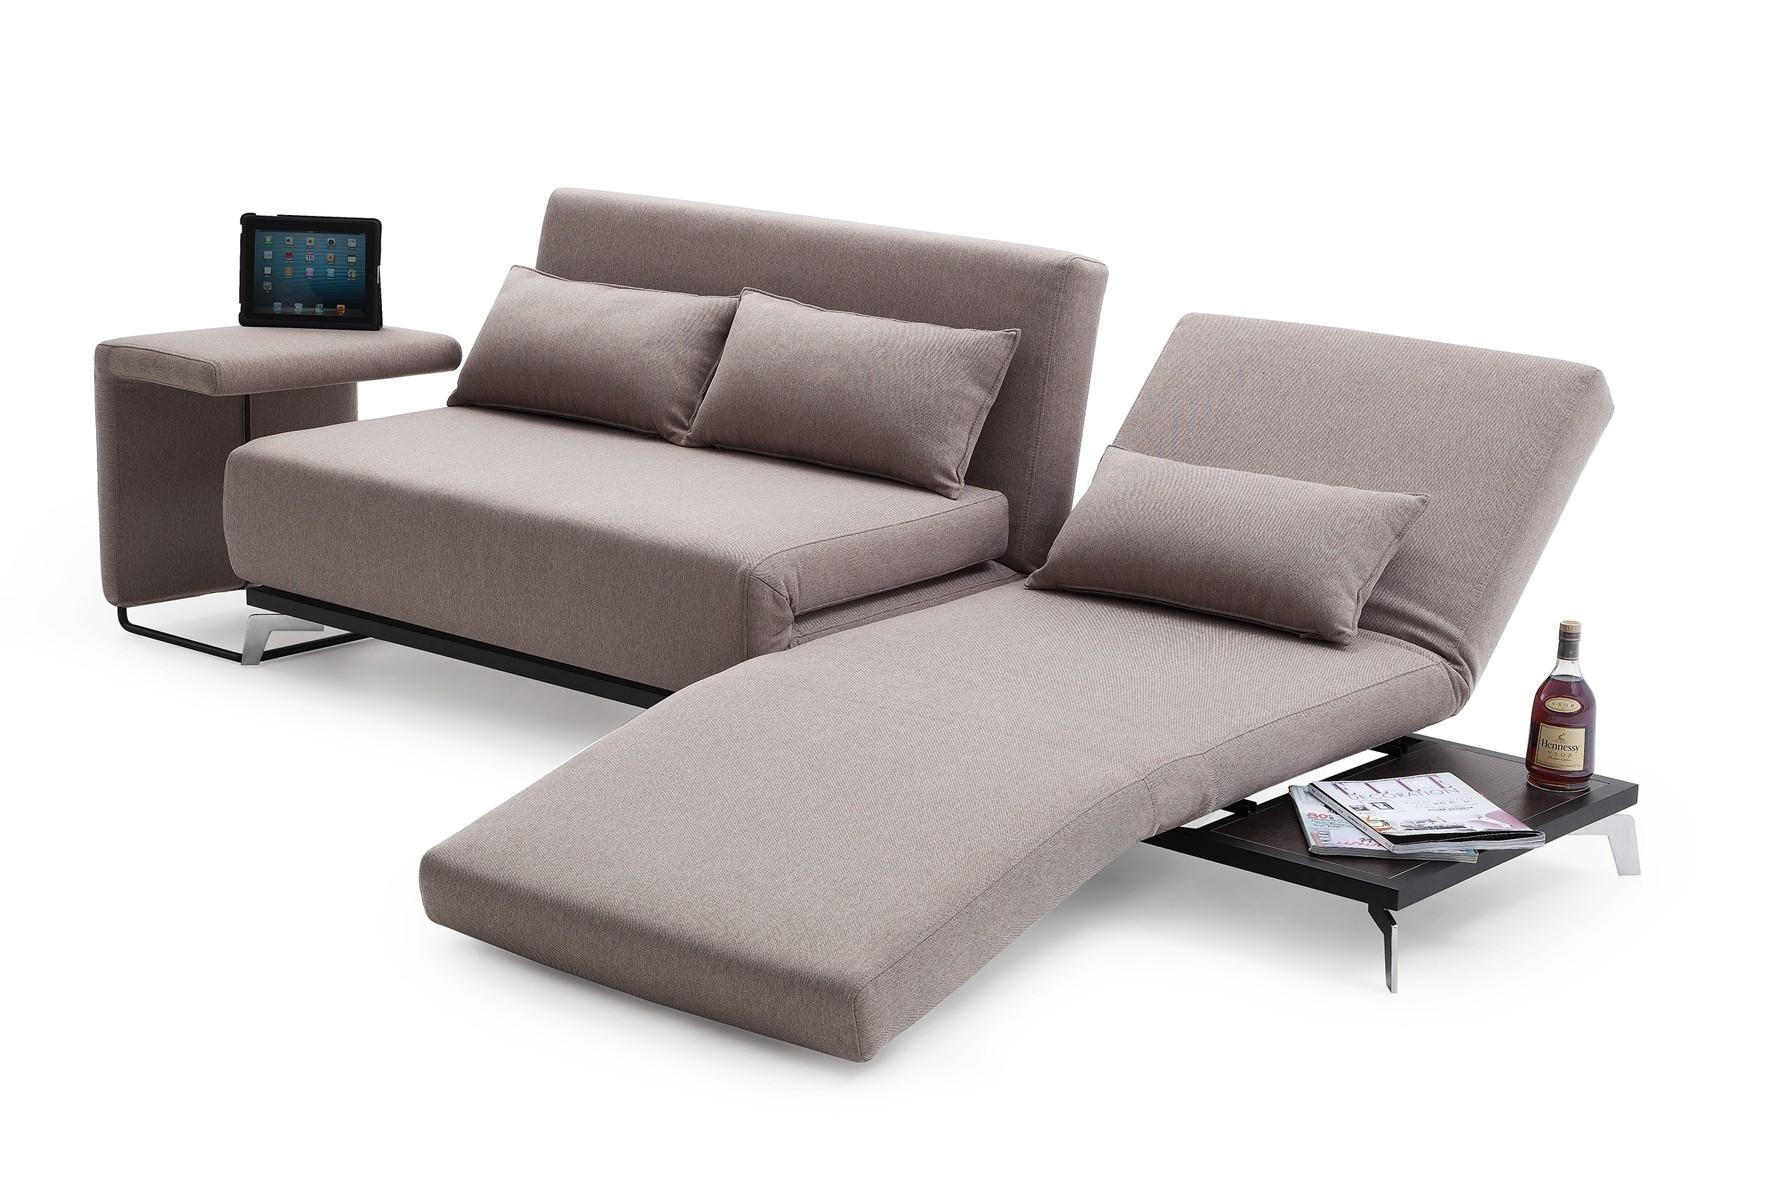 Jh033 Modern Sofa Bed In Modern Sofas (Image 11 of 20)